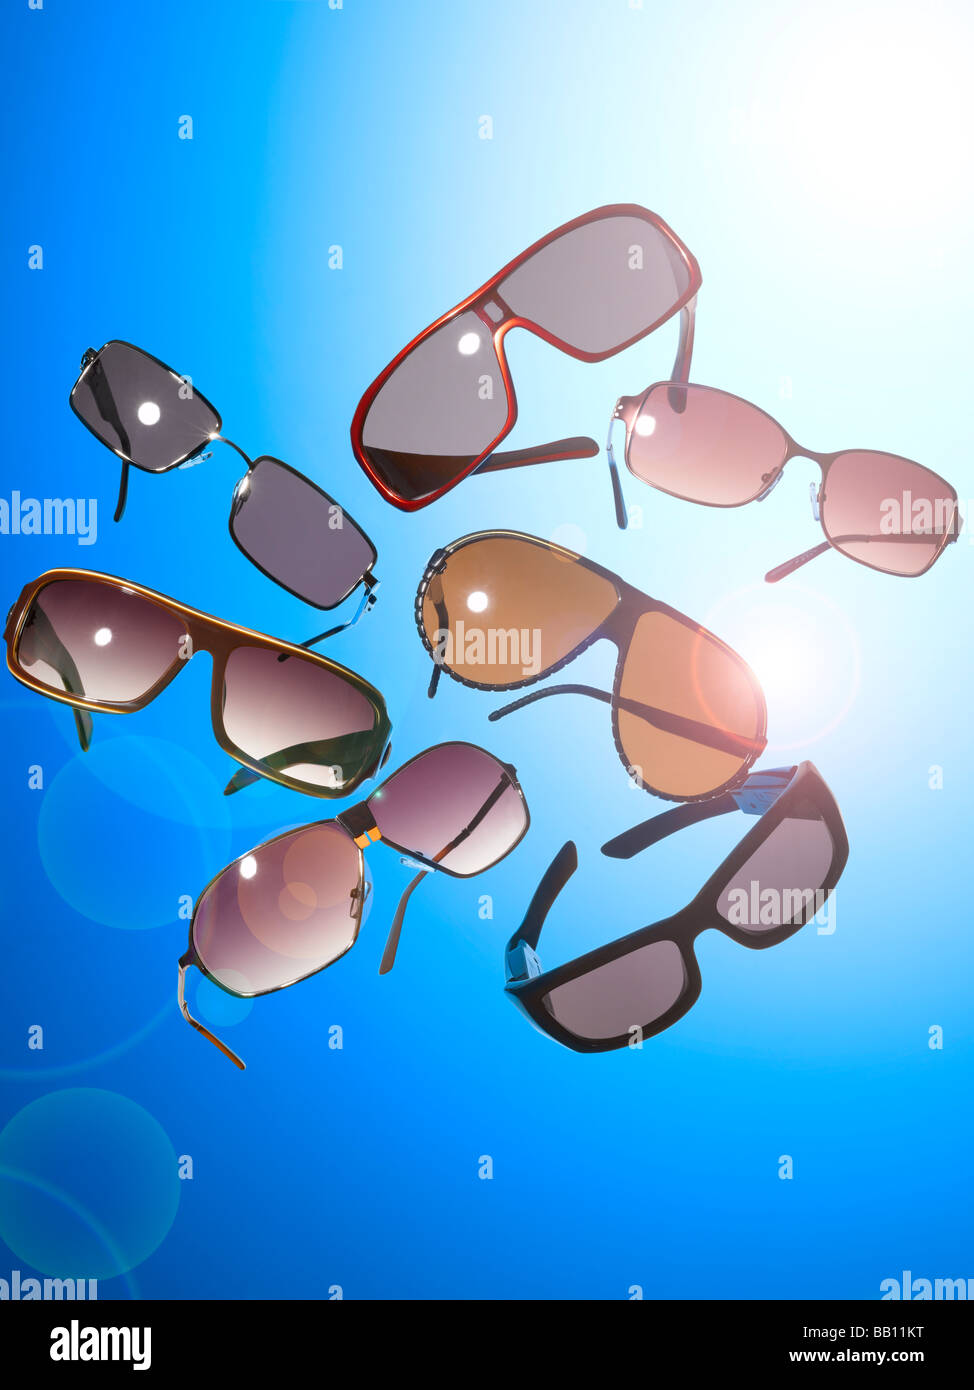 A collection of sun glasses on a blue background - Stock Image